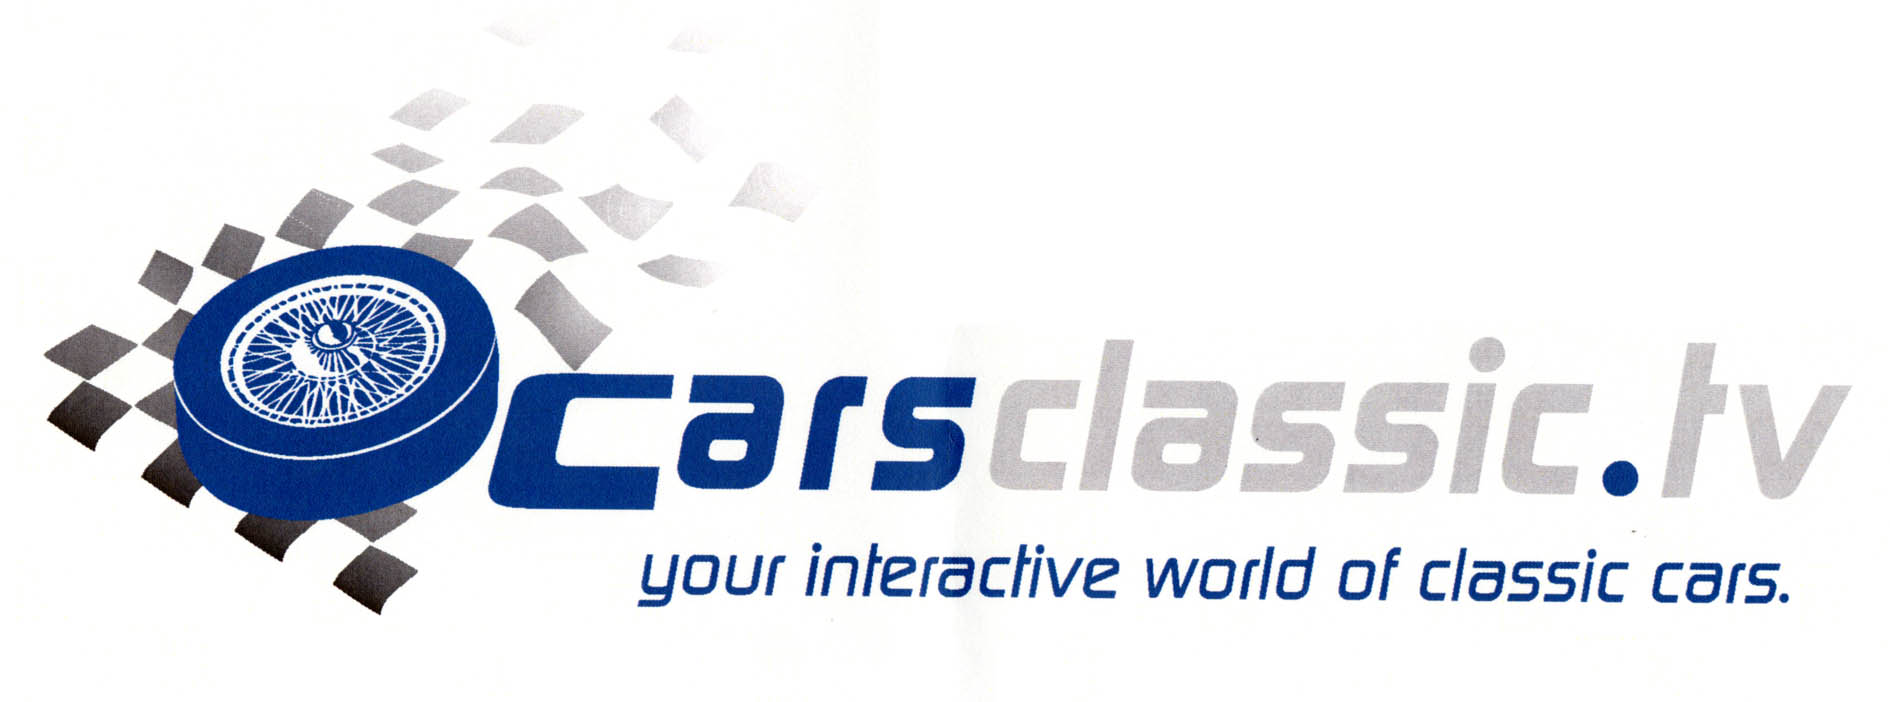 carsclassic.tv your interactive world of classic cars.